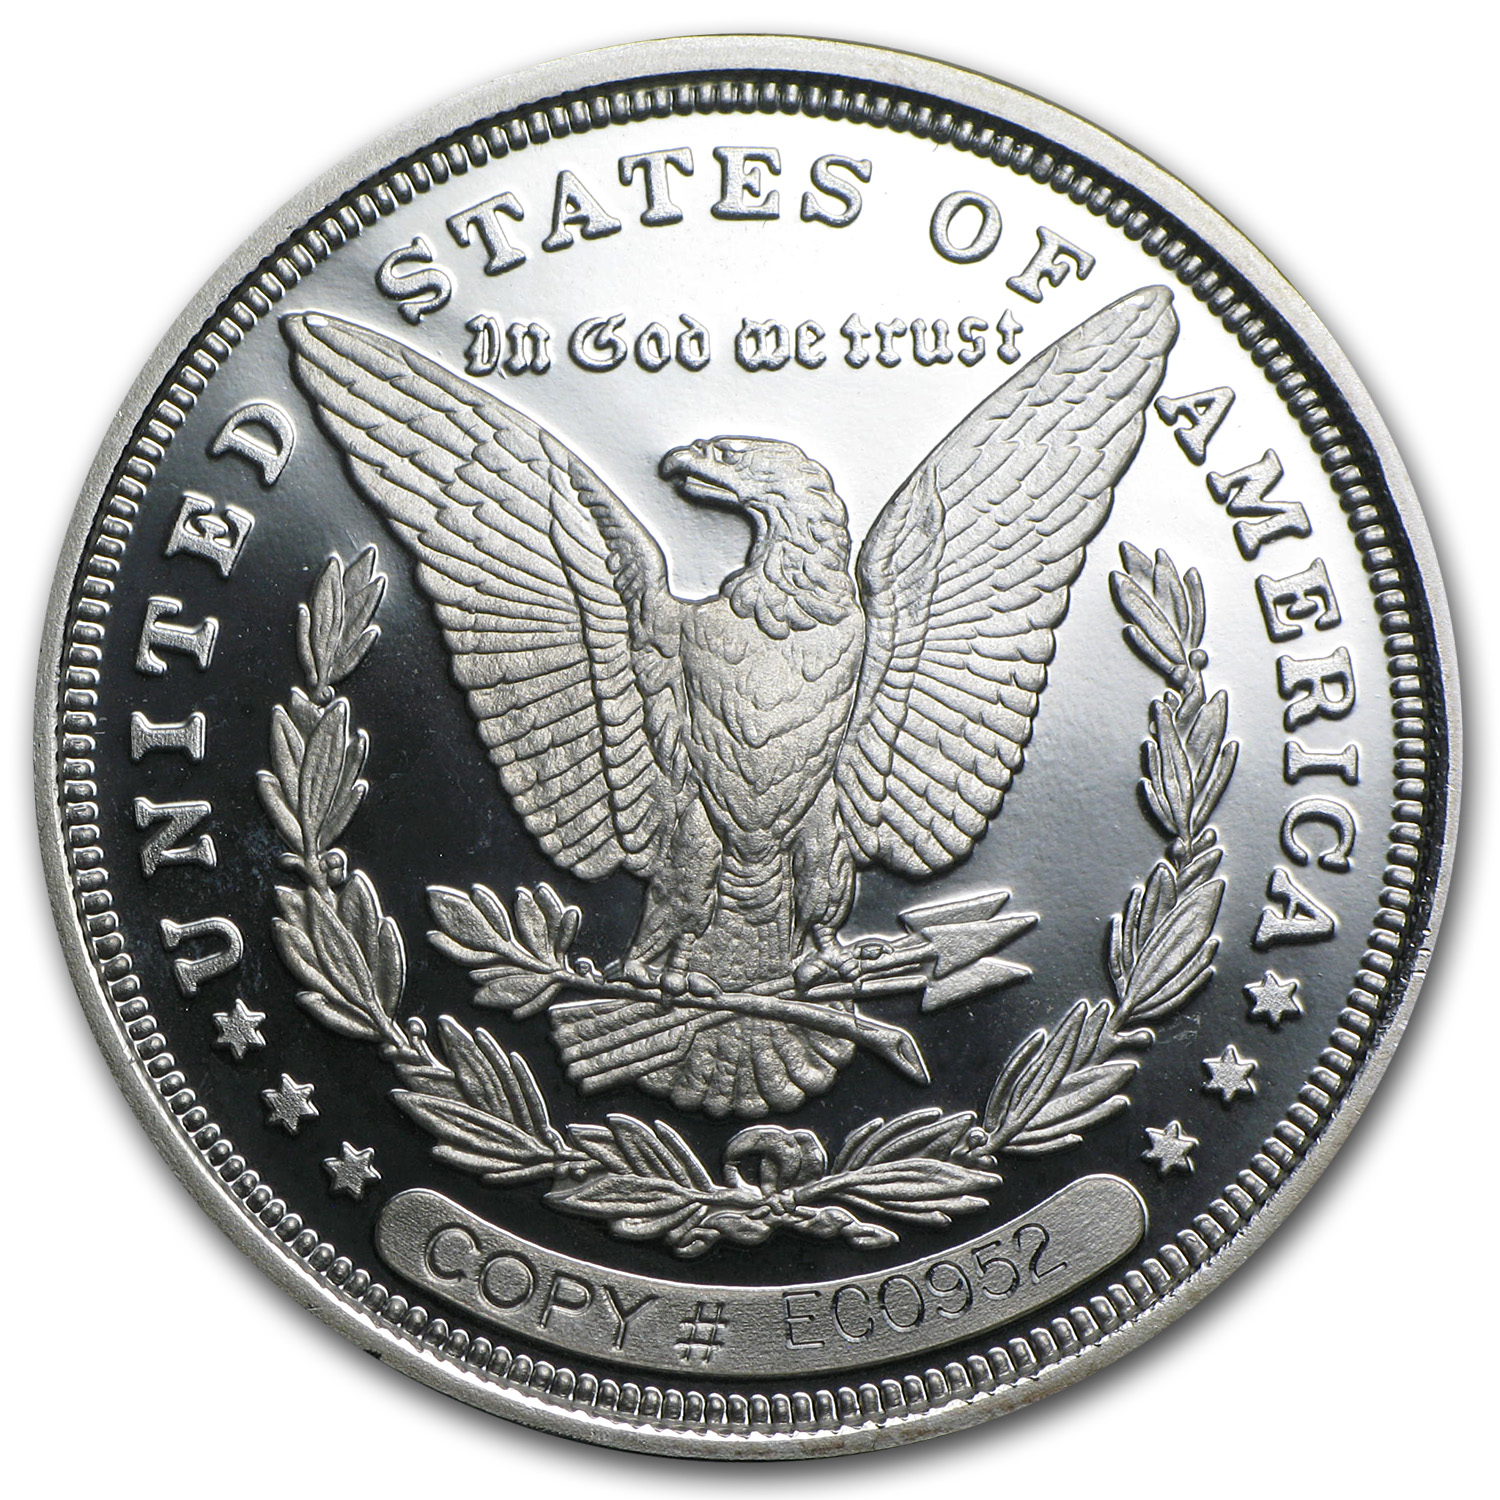 1 oz Silver Round - 1895 Morgan Dollar Replica (Proof)